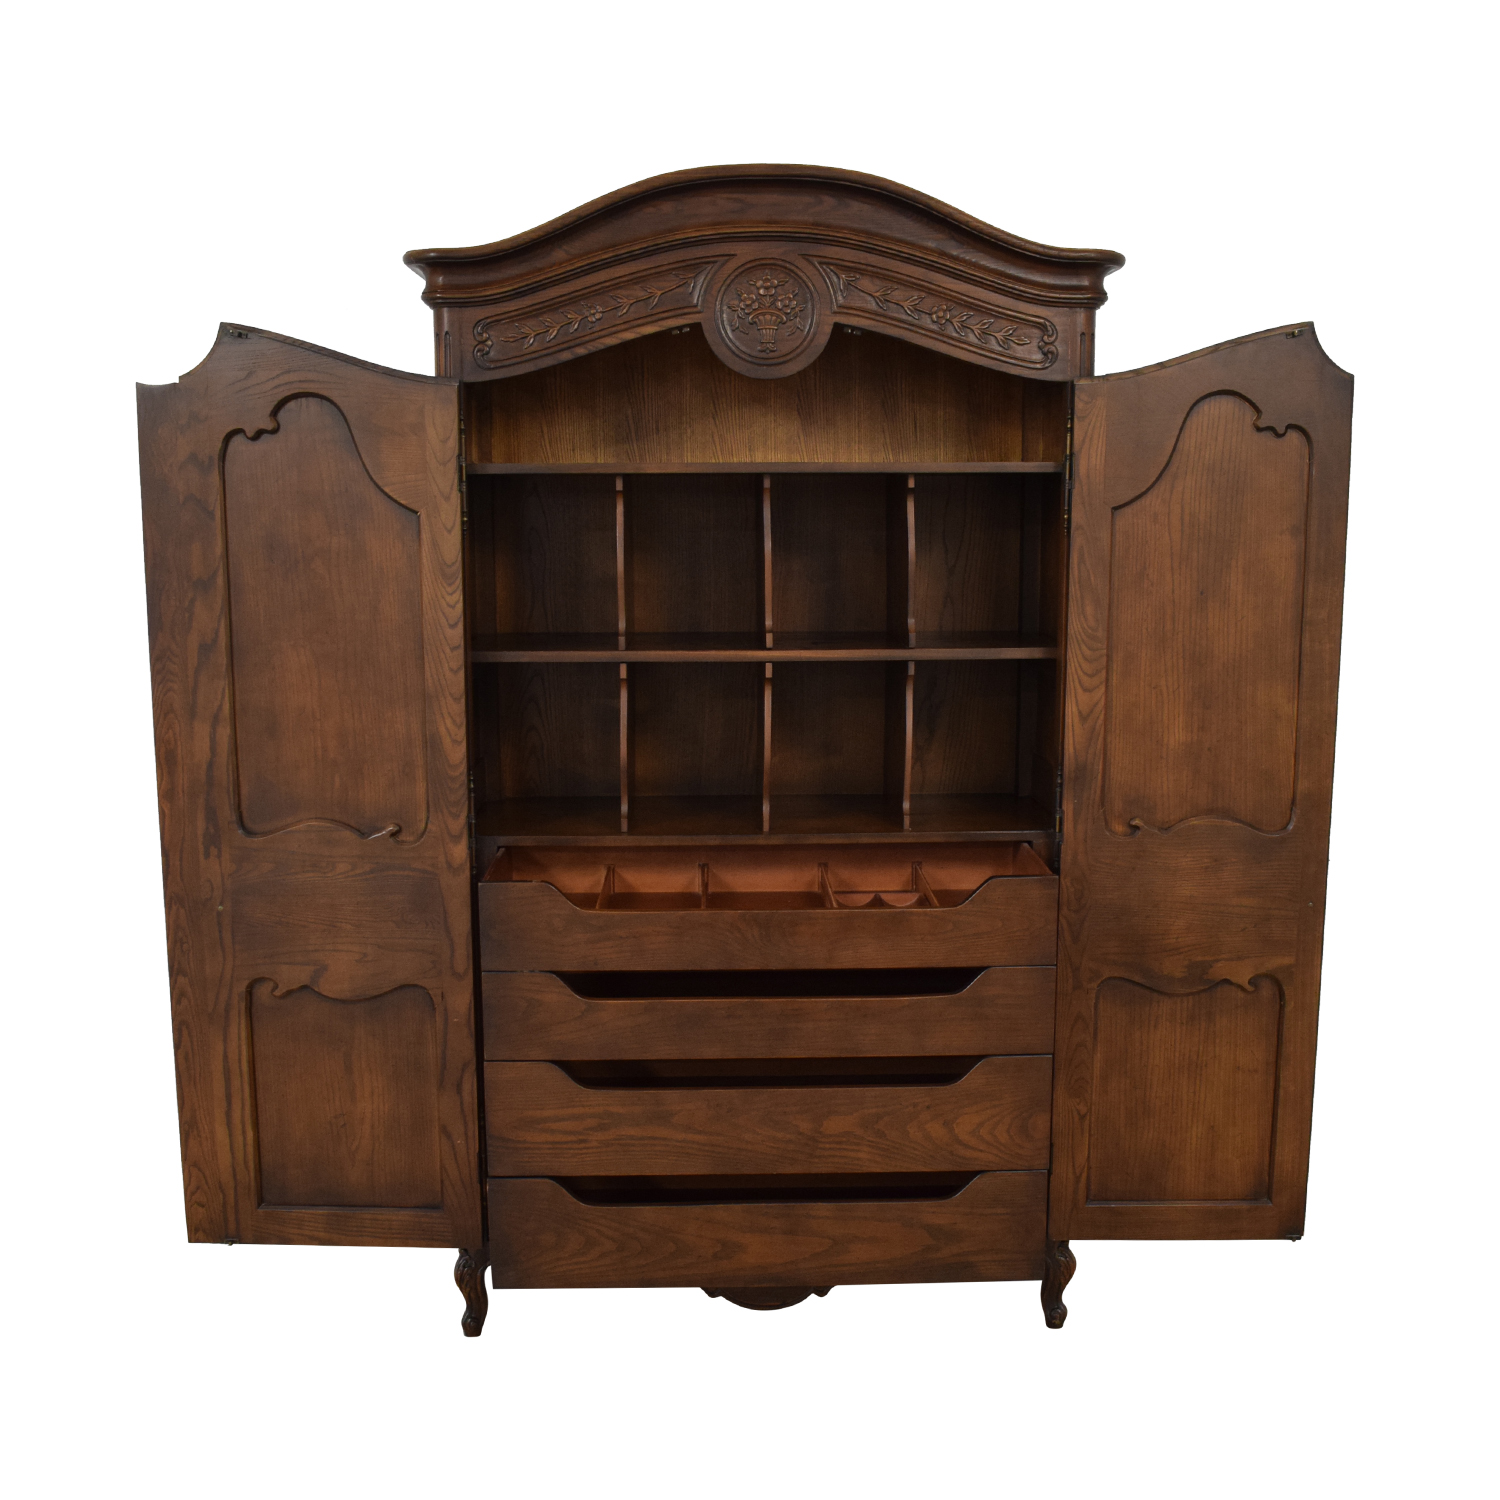 Henredon Furniture Henredon French Country Two Door Armoire nj